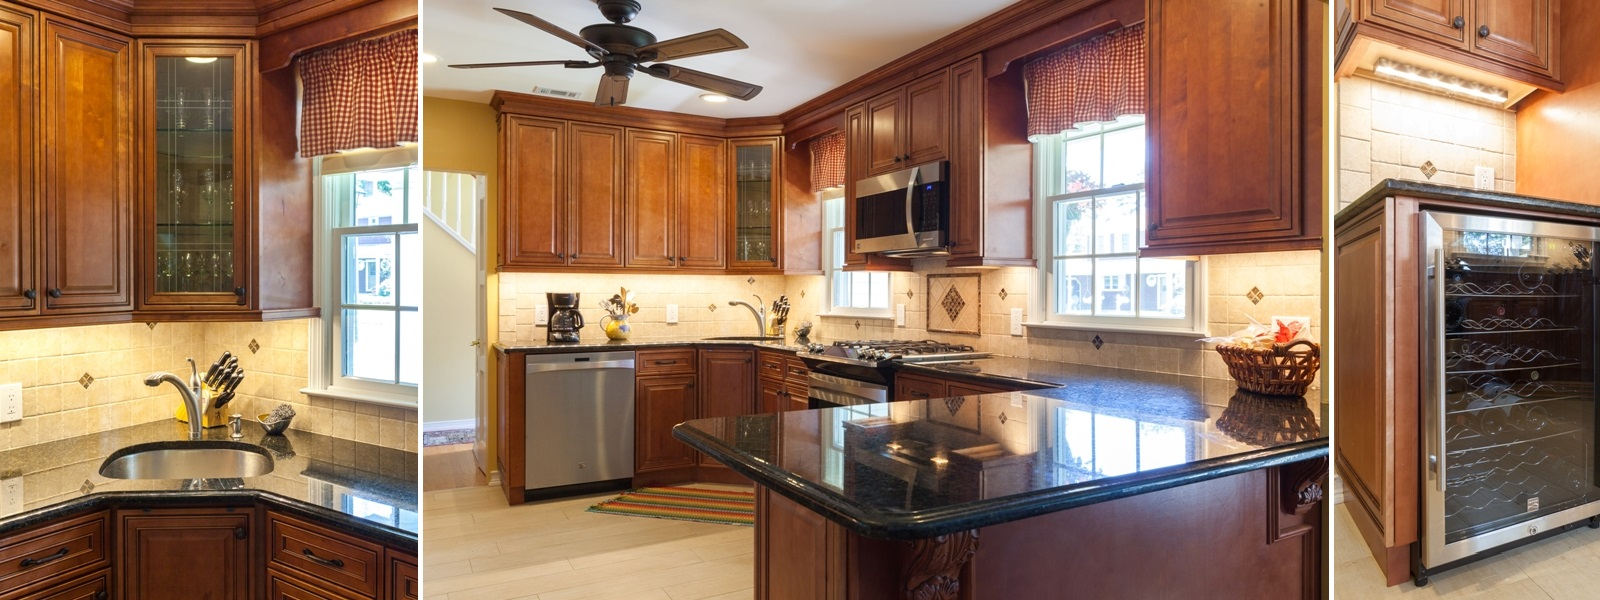 Pinal County Az Kitchen And Bath Cabinets